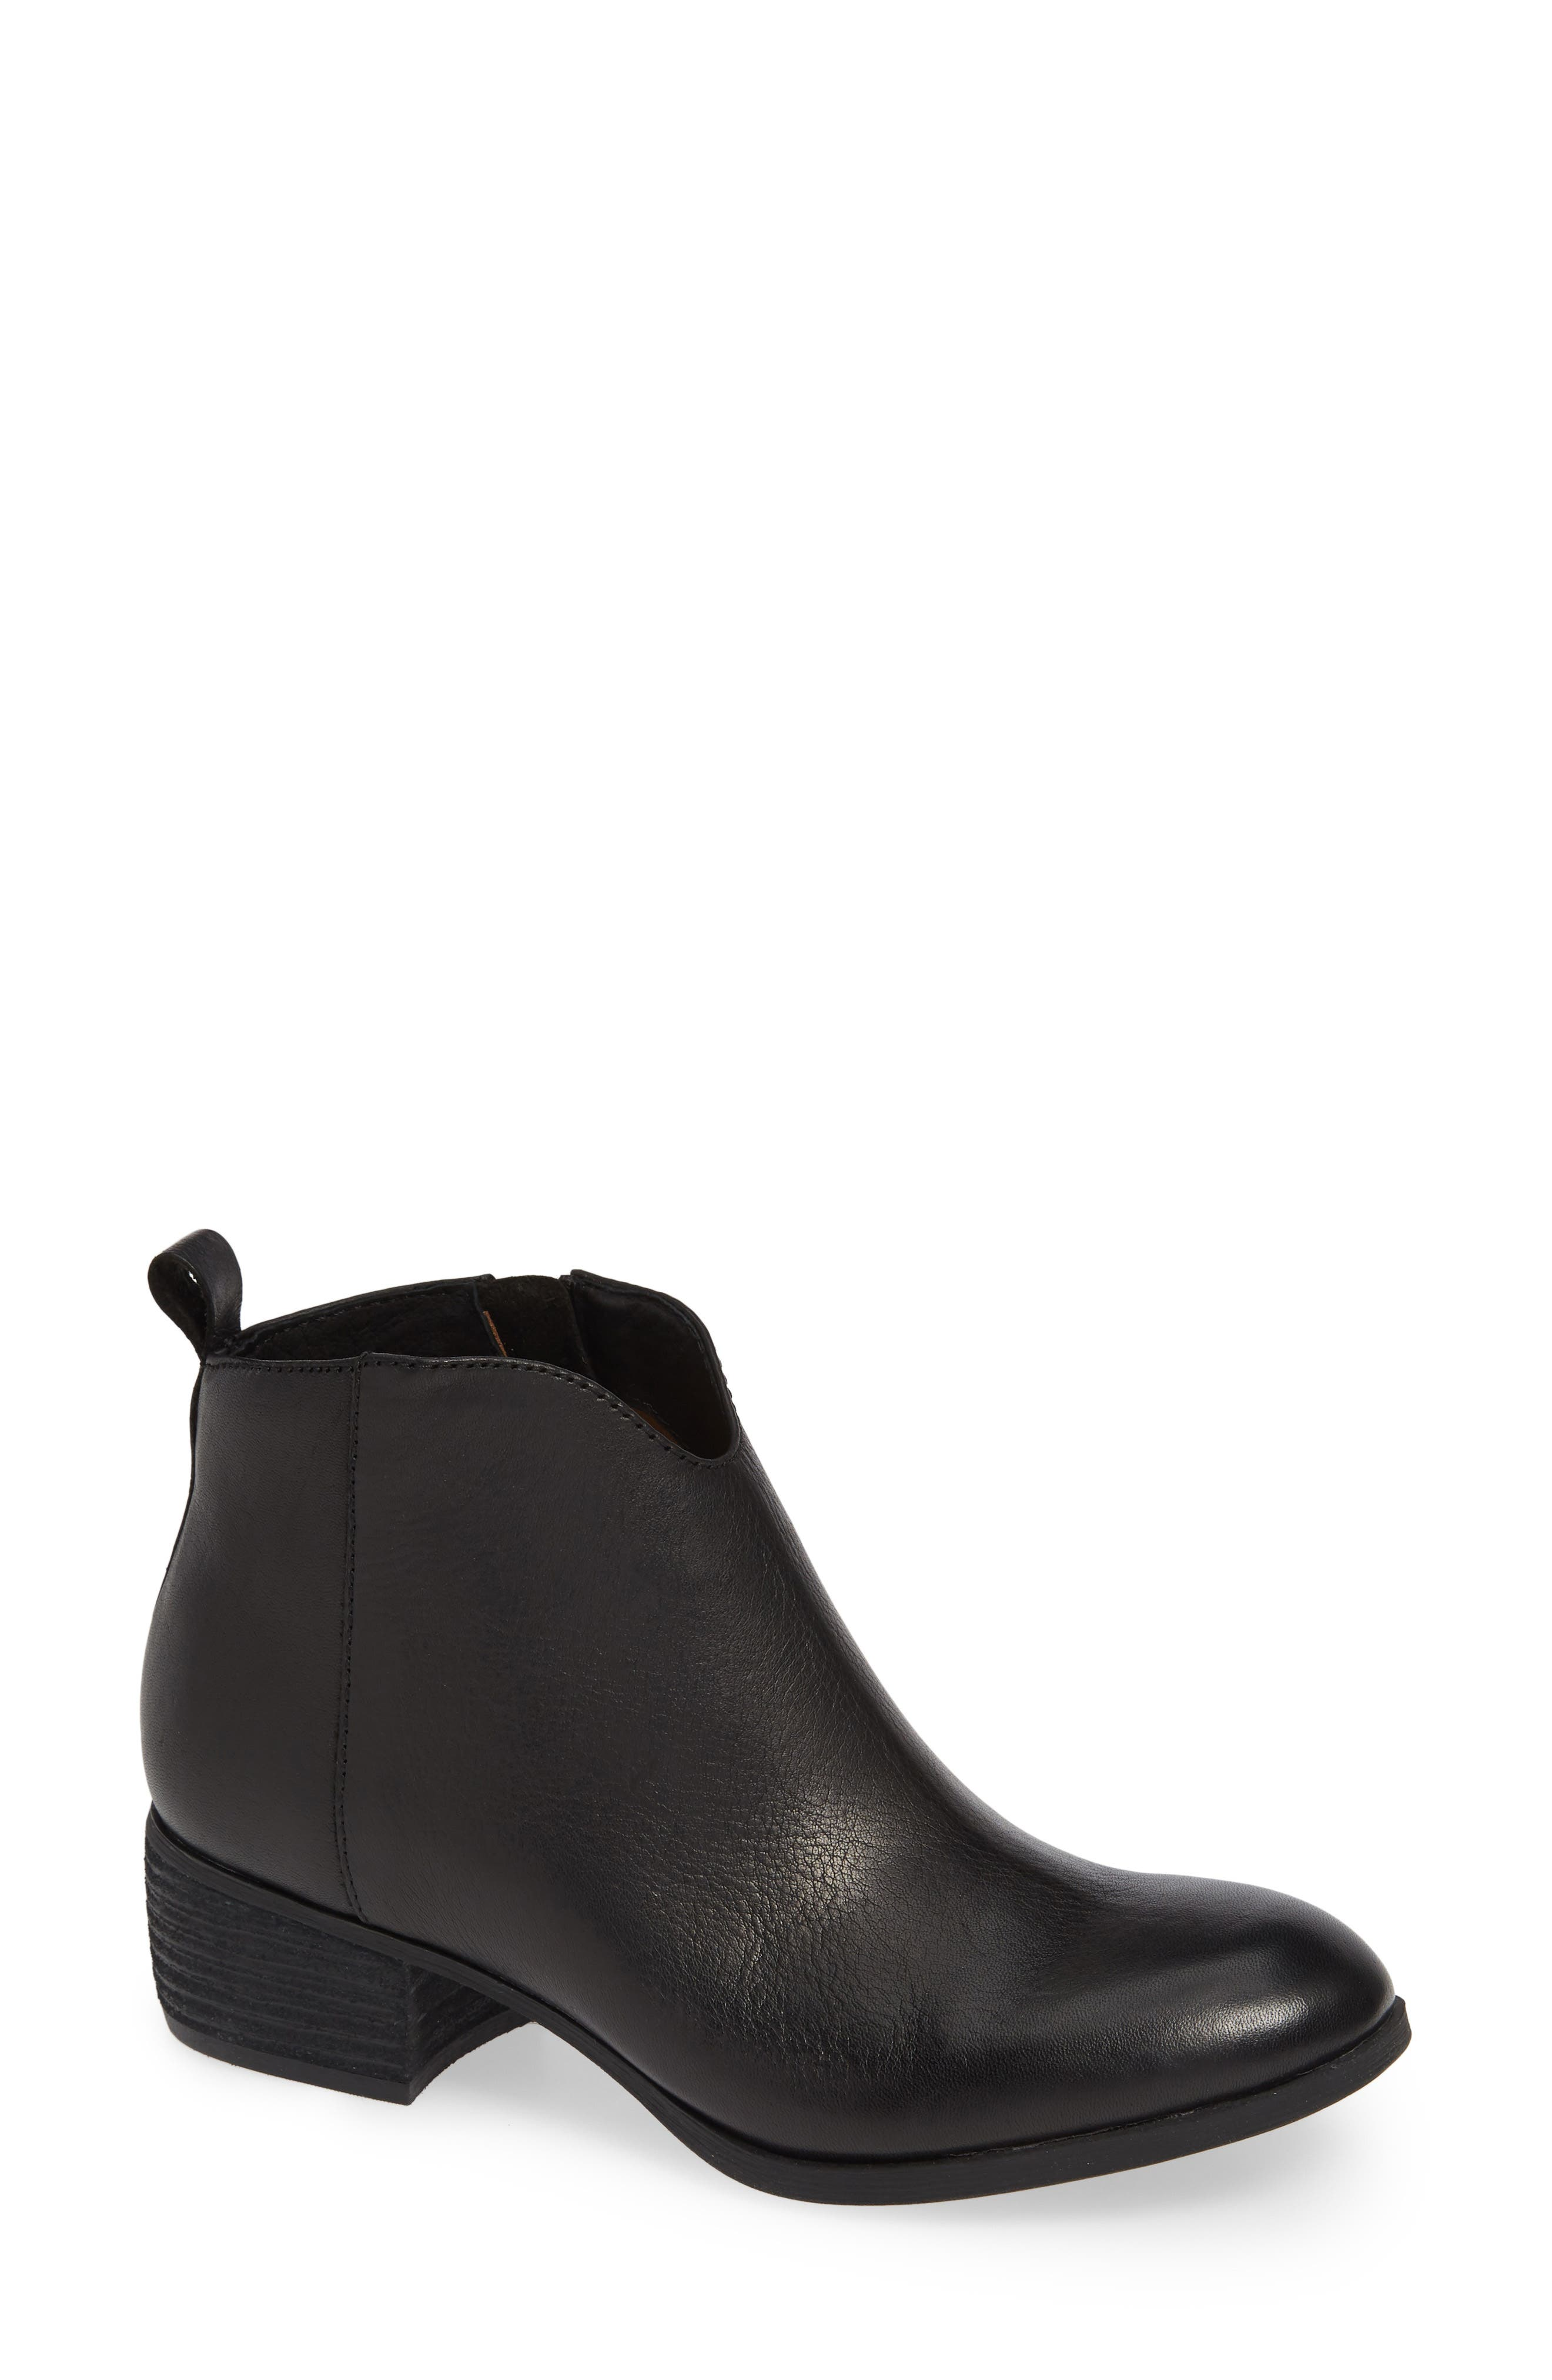 Coleta Bootie,                         Main,                         color, BLACK LEATHER